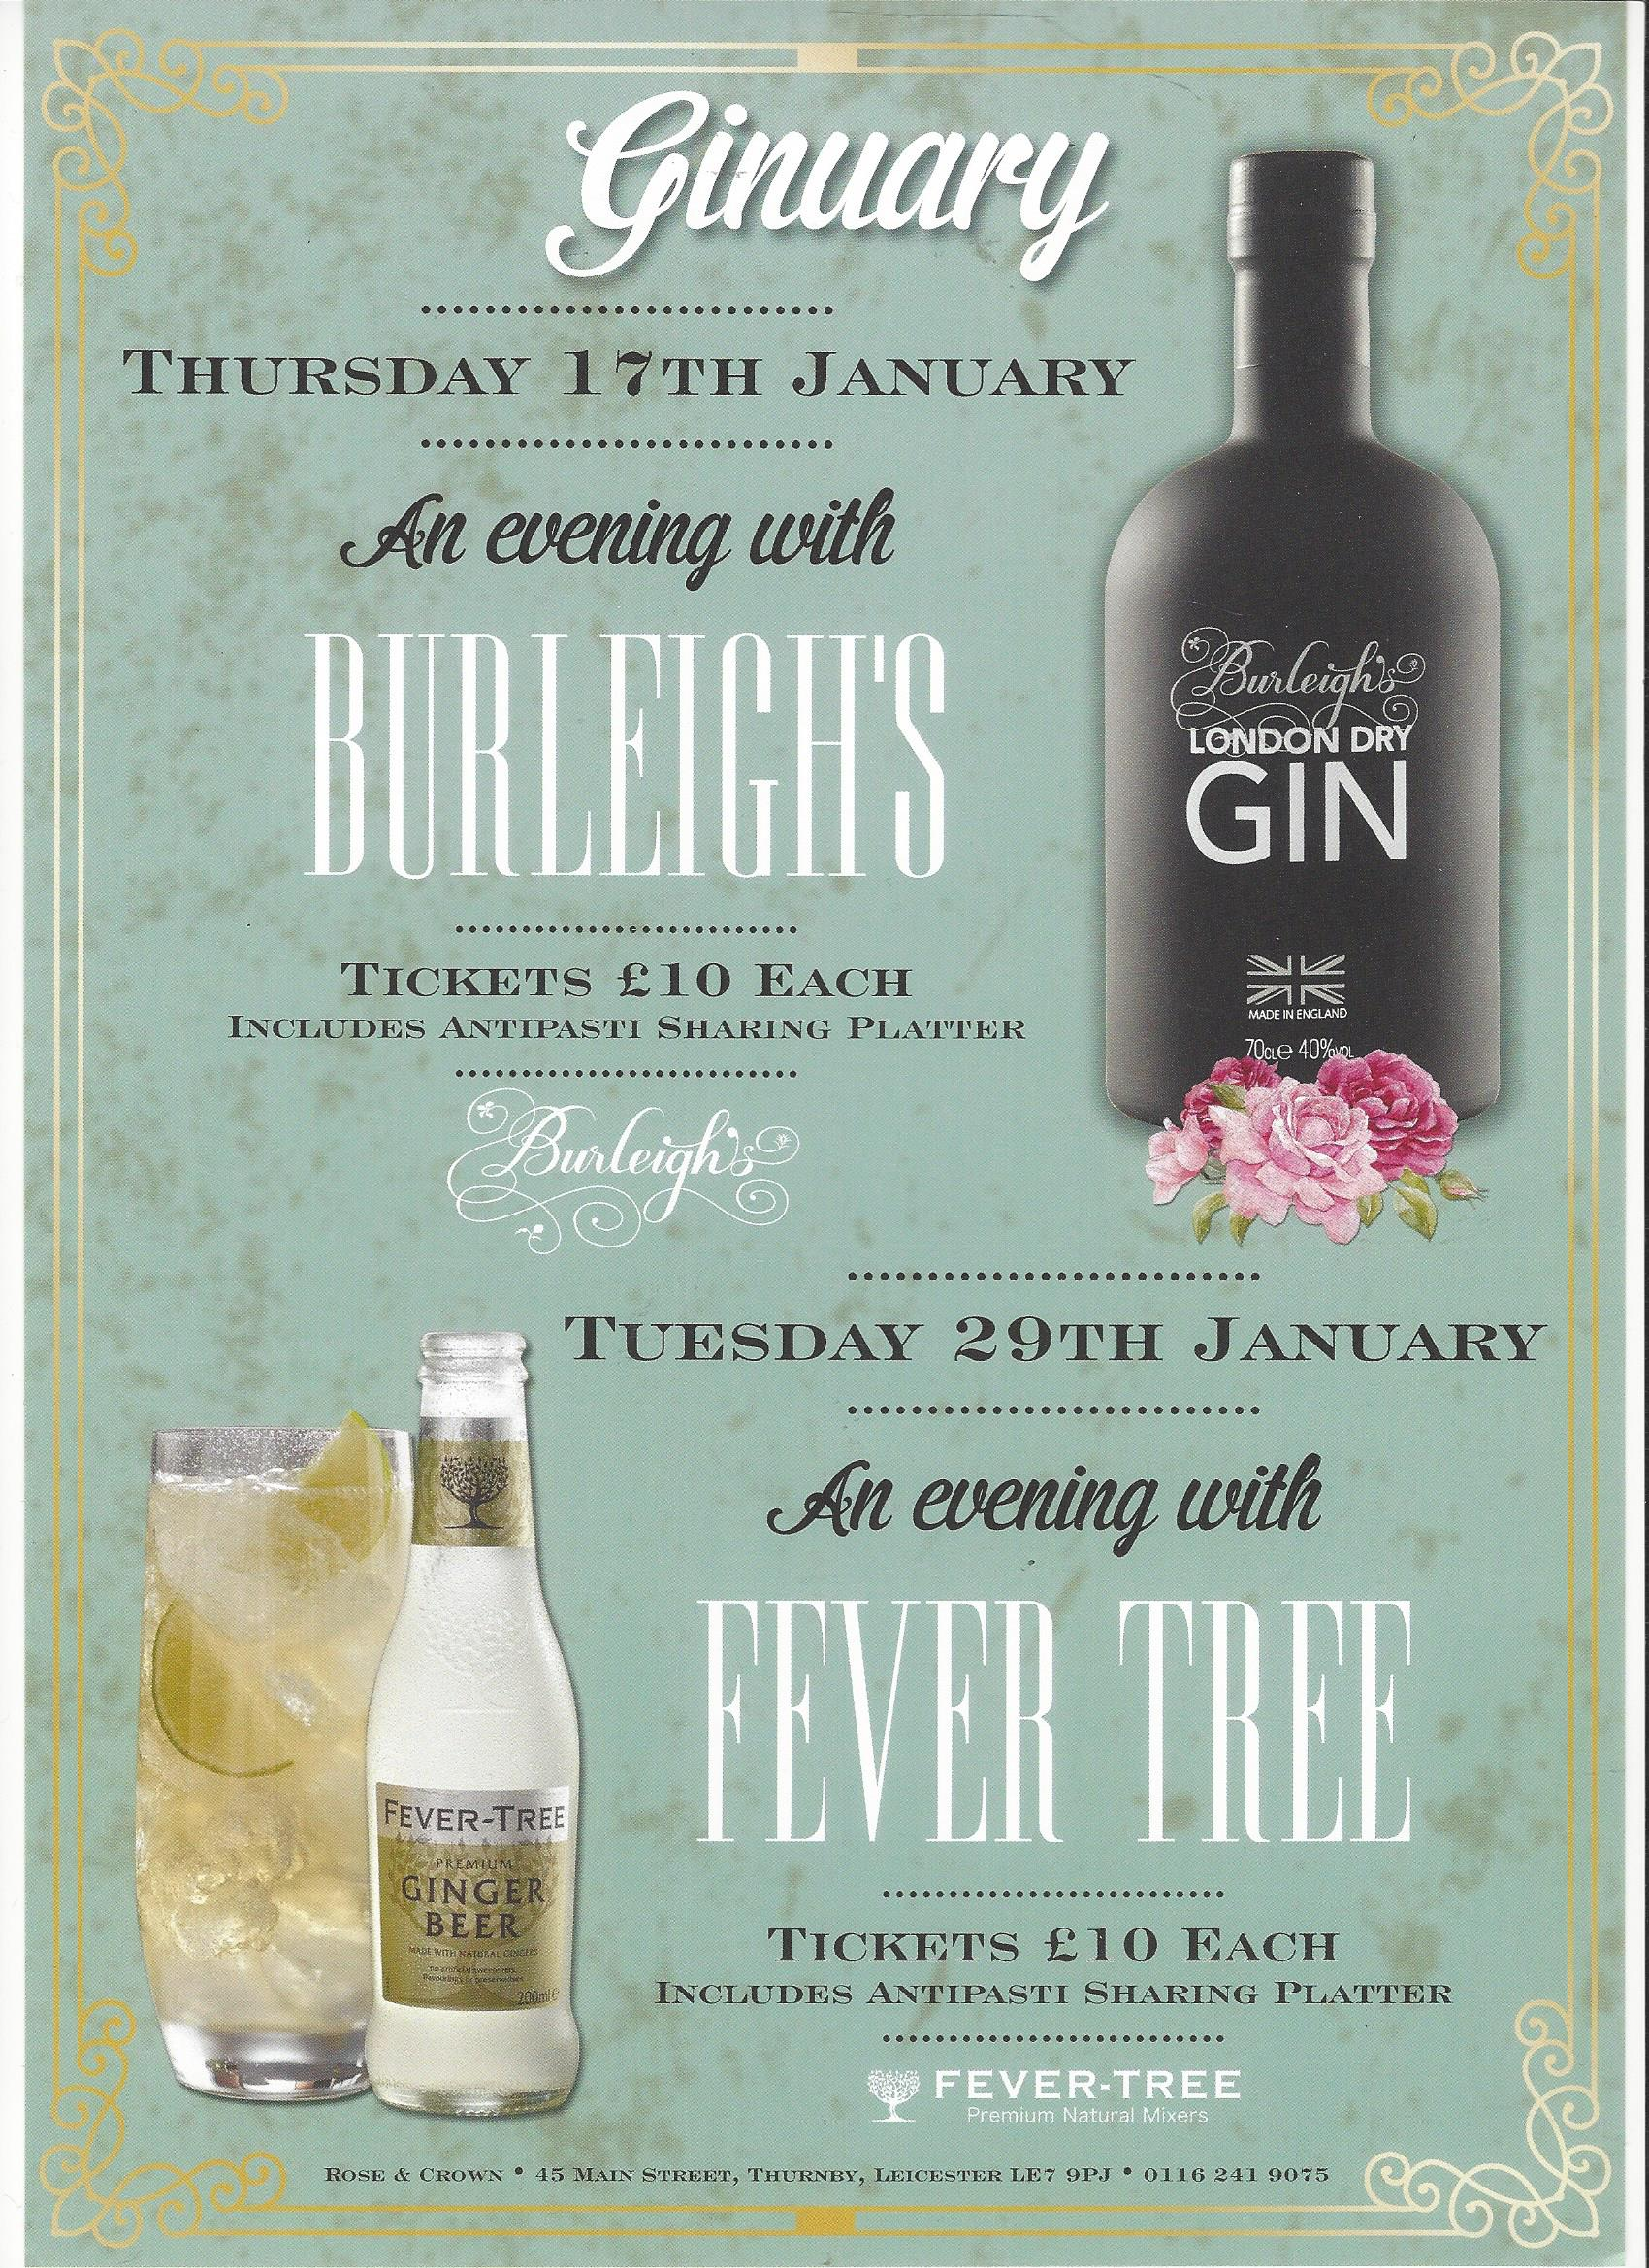 ginuary poster 19.jpg